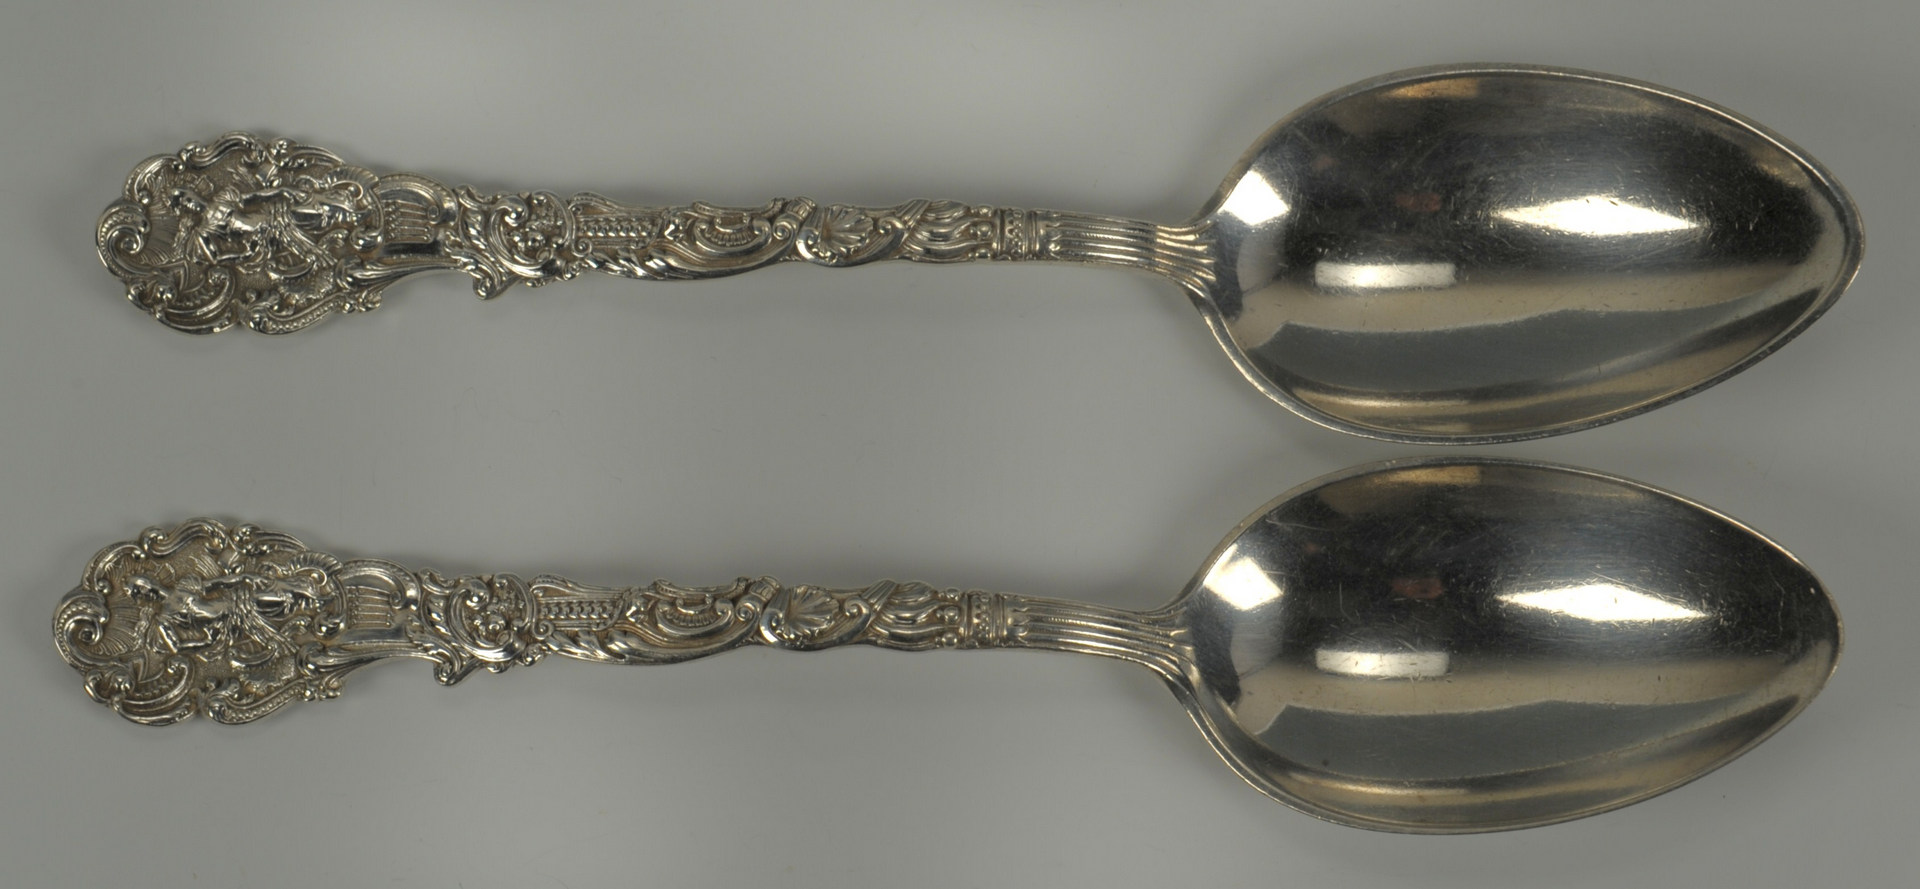 Lot 241: Tiffany sterling spoons and Gorham Versailles